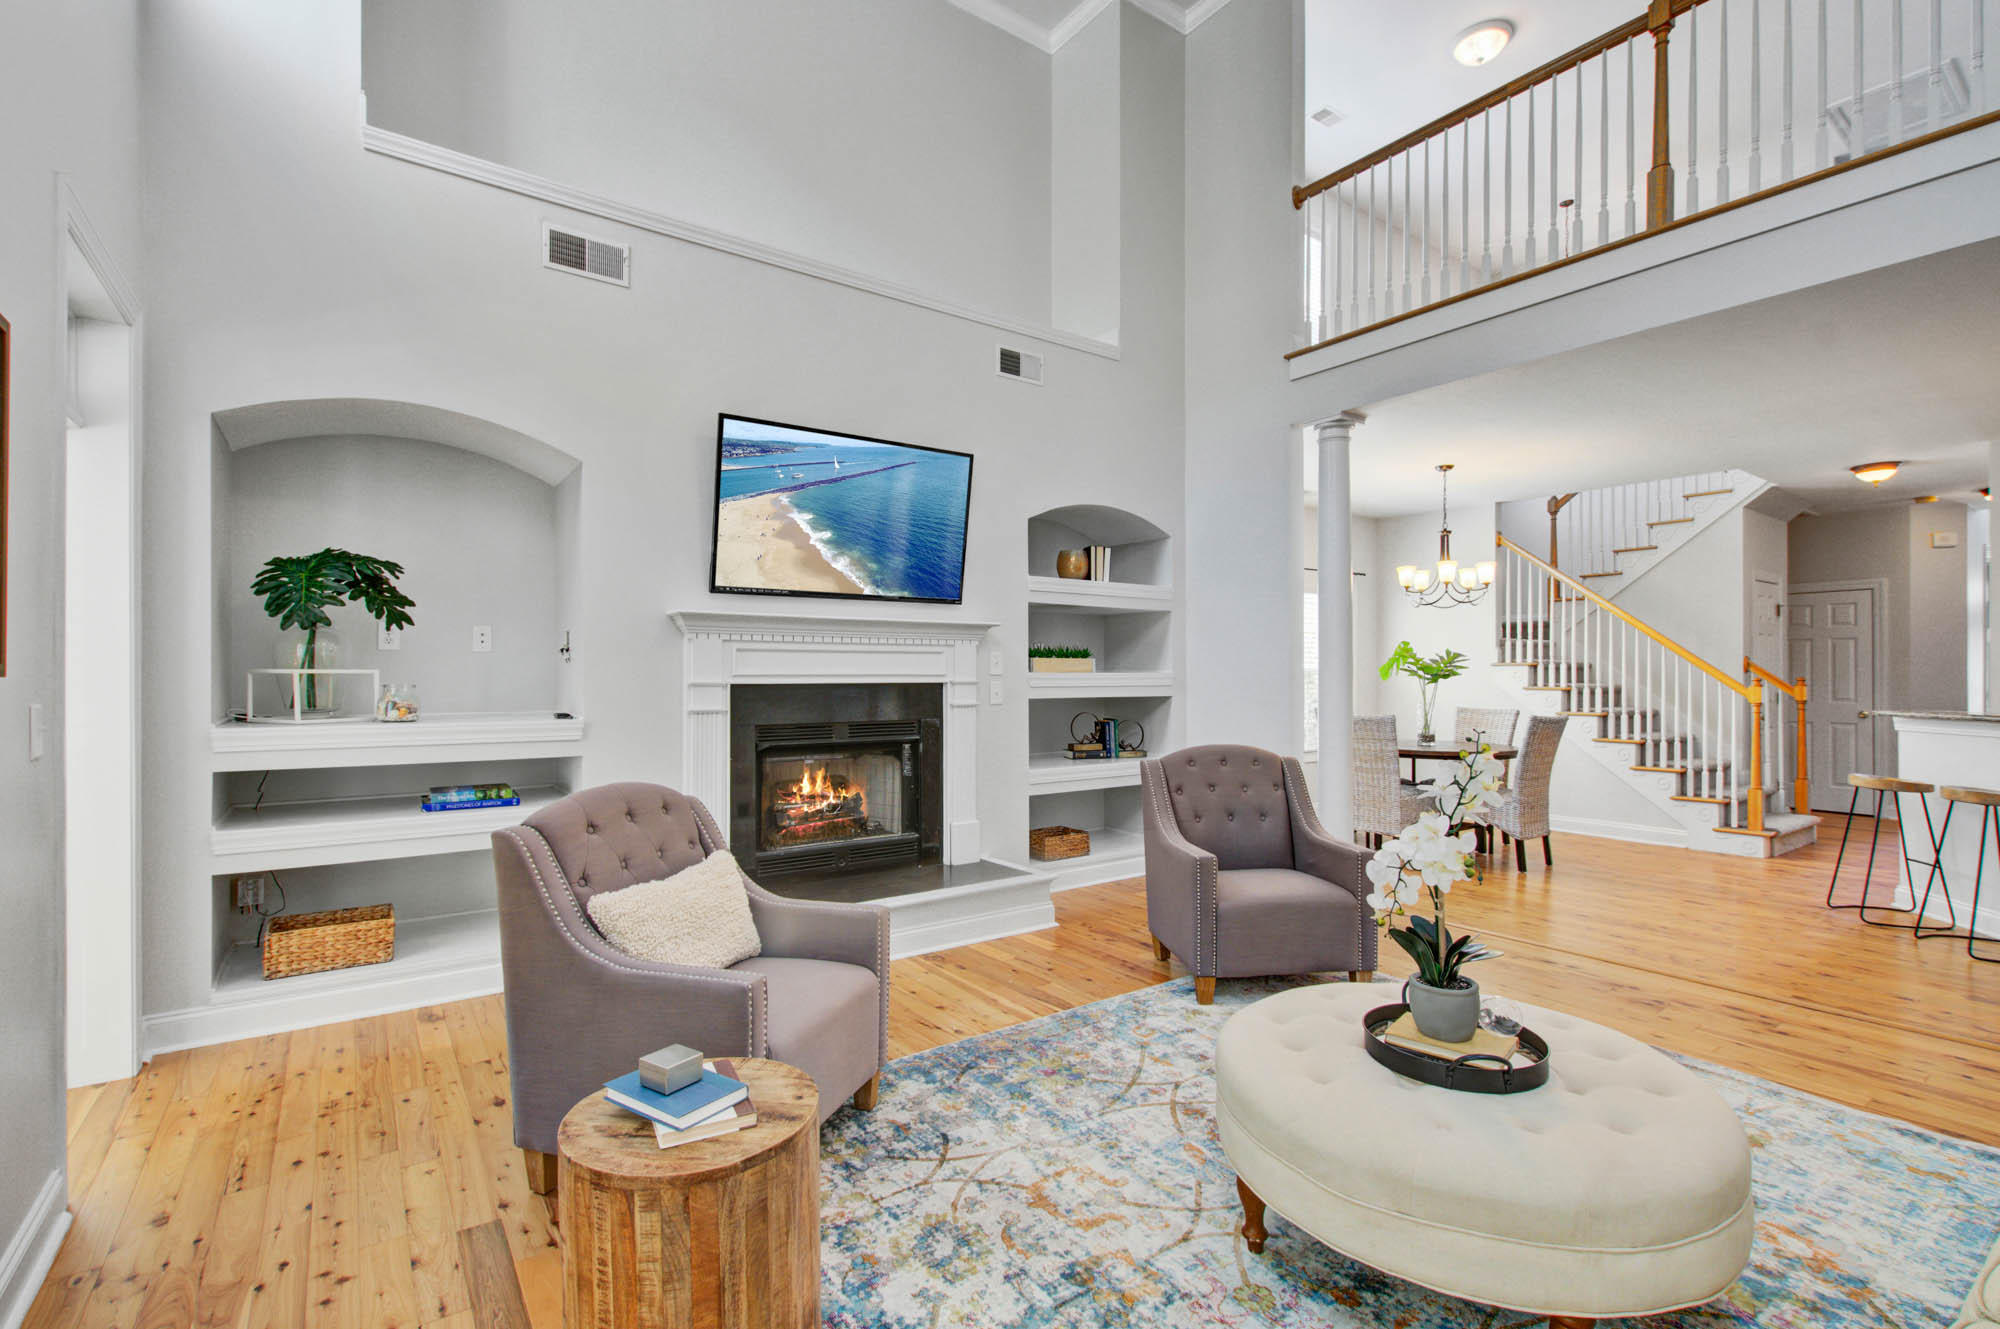 Rivertowne On The Wando Homes For Sale - 2193 Sandy Point, Mount Pleasant, SC - 30